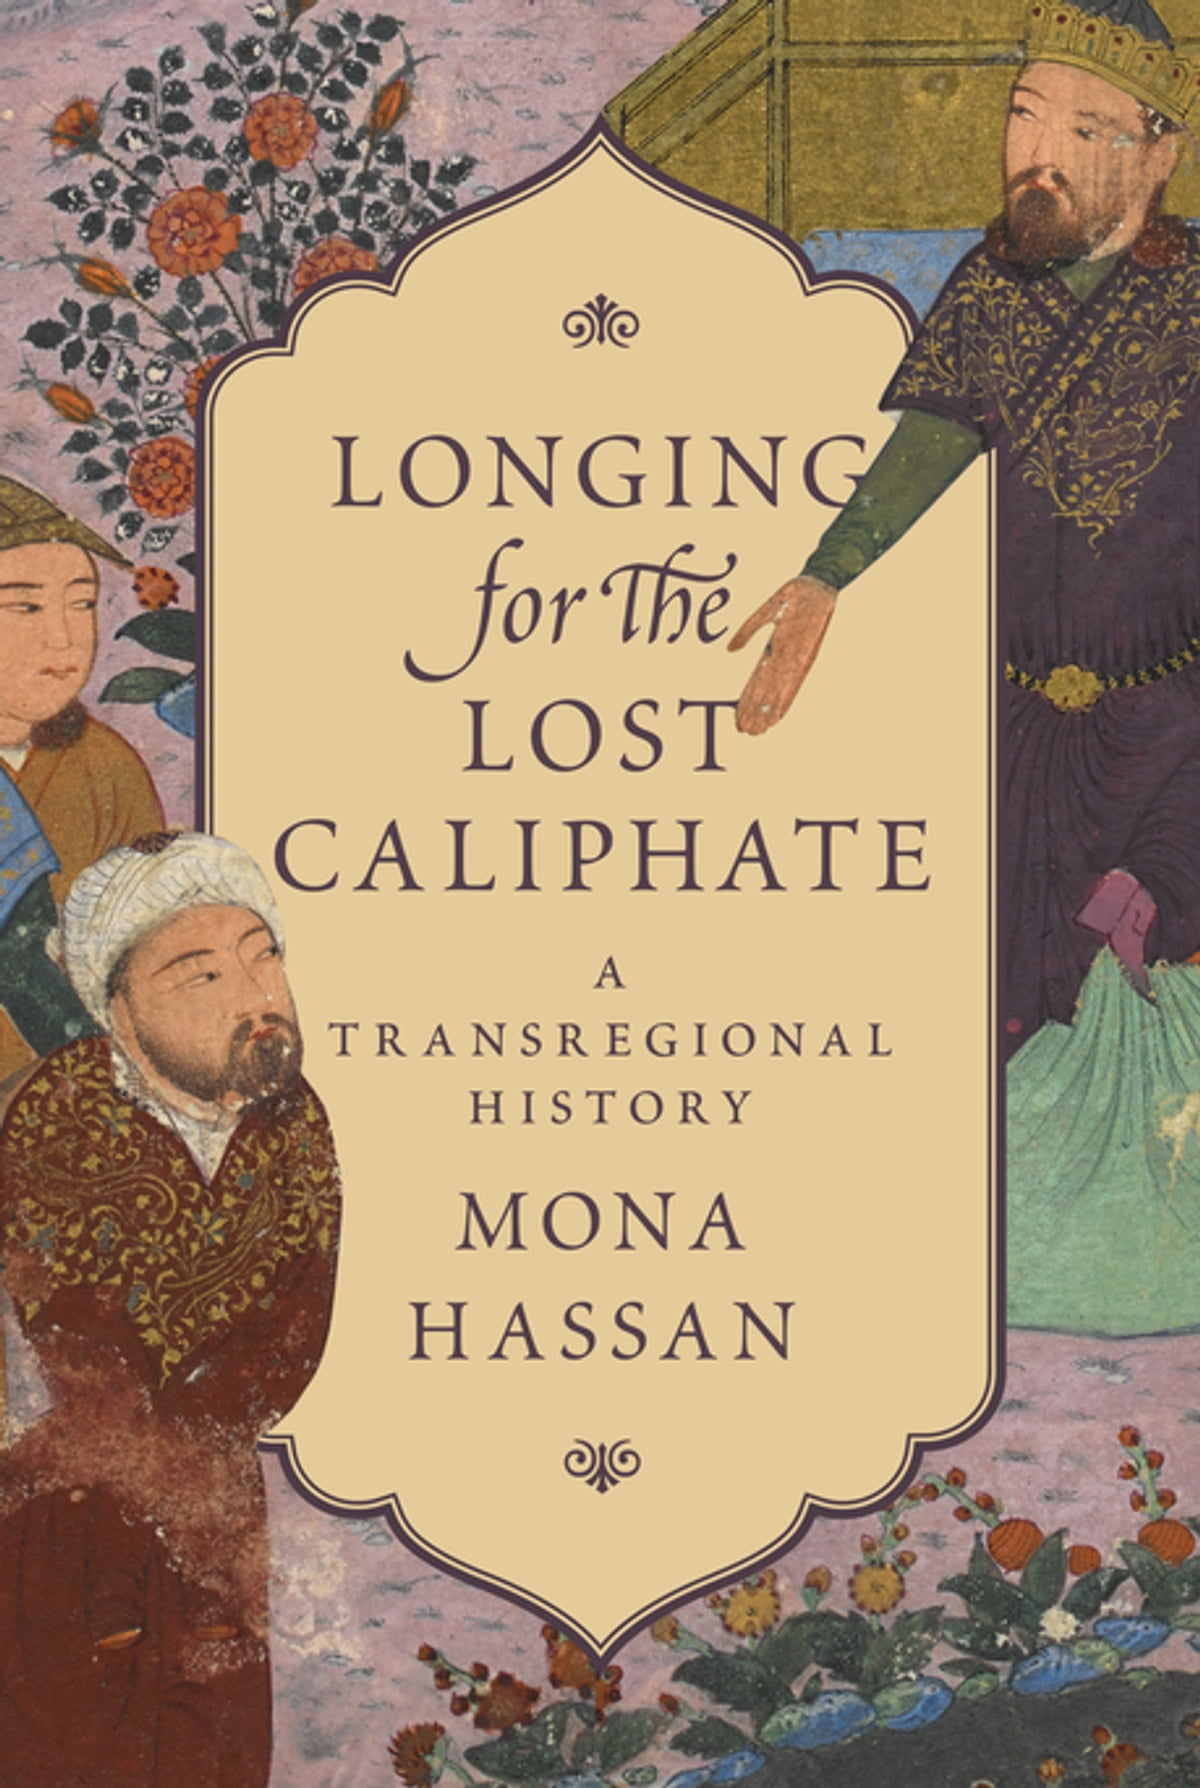 Longing For The Lost Caliphate Ebook By Mona Hassan  9781400883714  Kobo